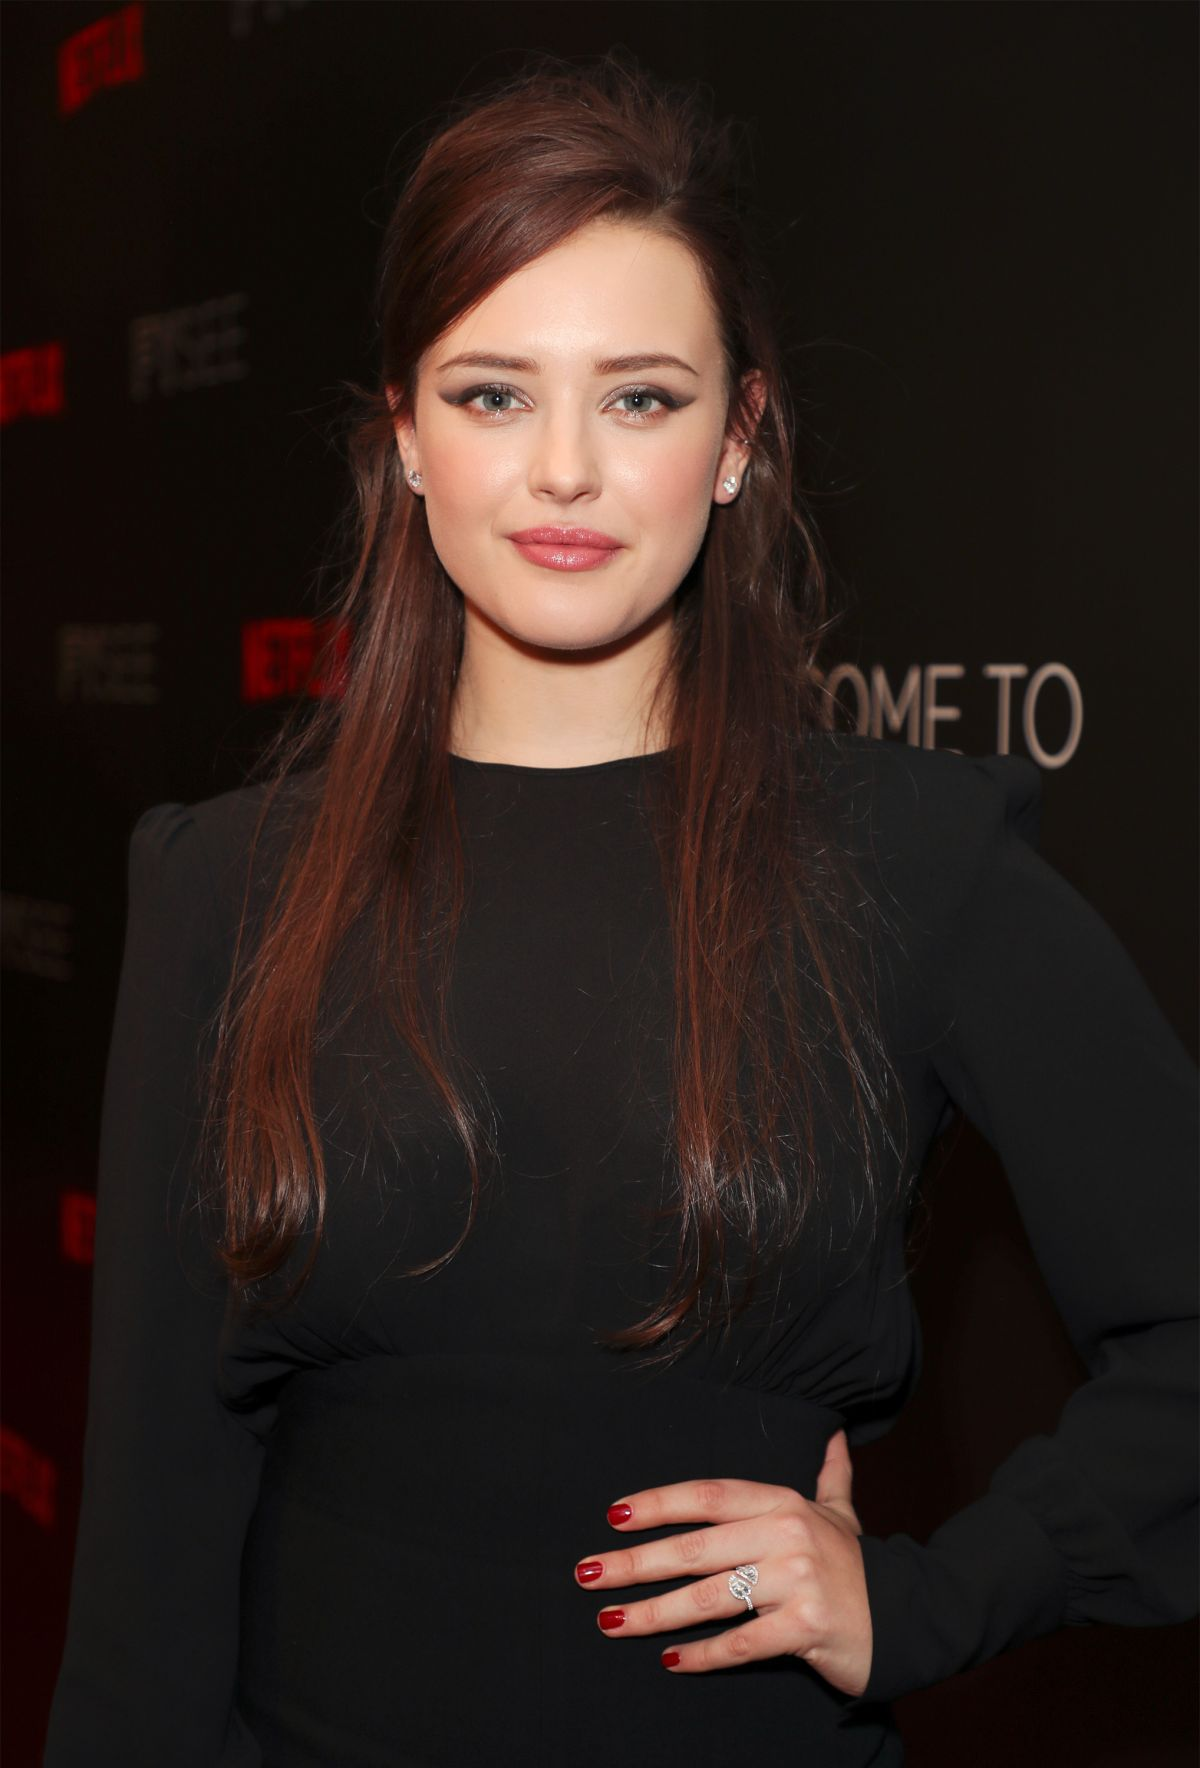 KATHERINE LANGFORD at 13 Reasons Why FYC Event in Los Angeles 06/02/2017